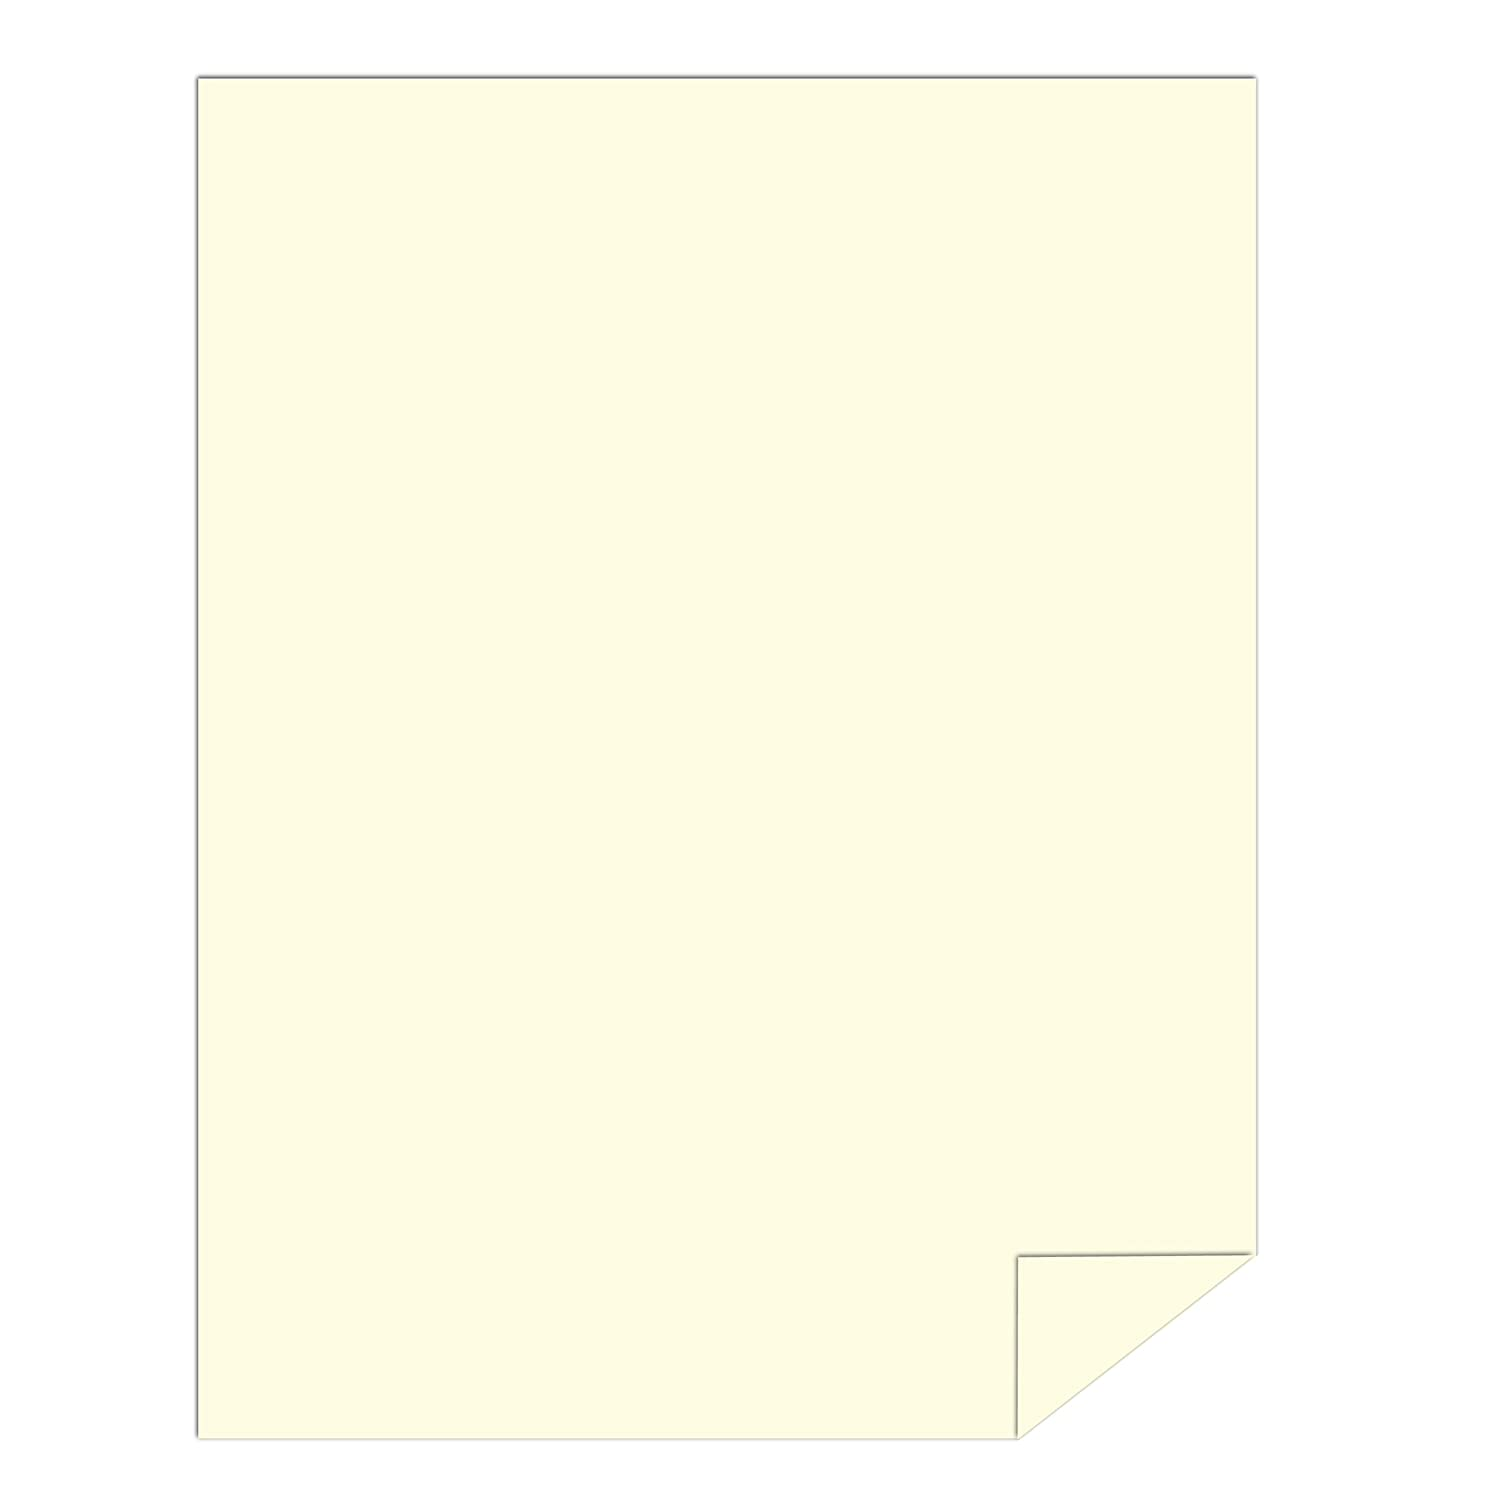 Made in The USA Springhill Digital Opaque Colors Ivory Legal 70lb 500 Sheets // 1 Ream 8.5 x 14